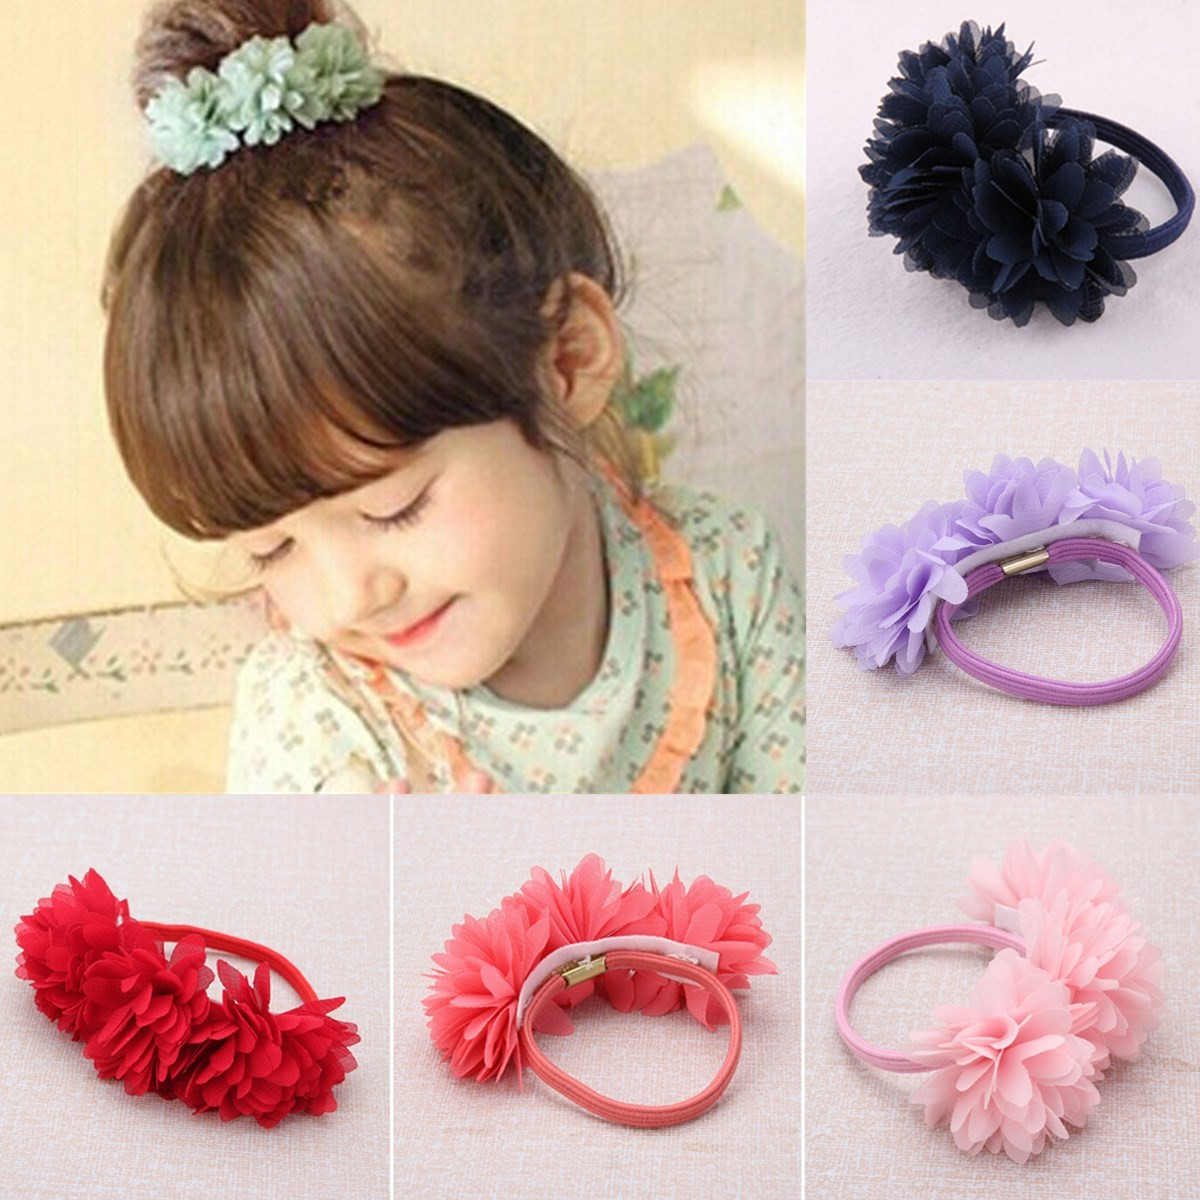 Kid Girls Baby Toddler Infant Cloth Flower Floral Headbrand Children Princess Hair Rope Accessories